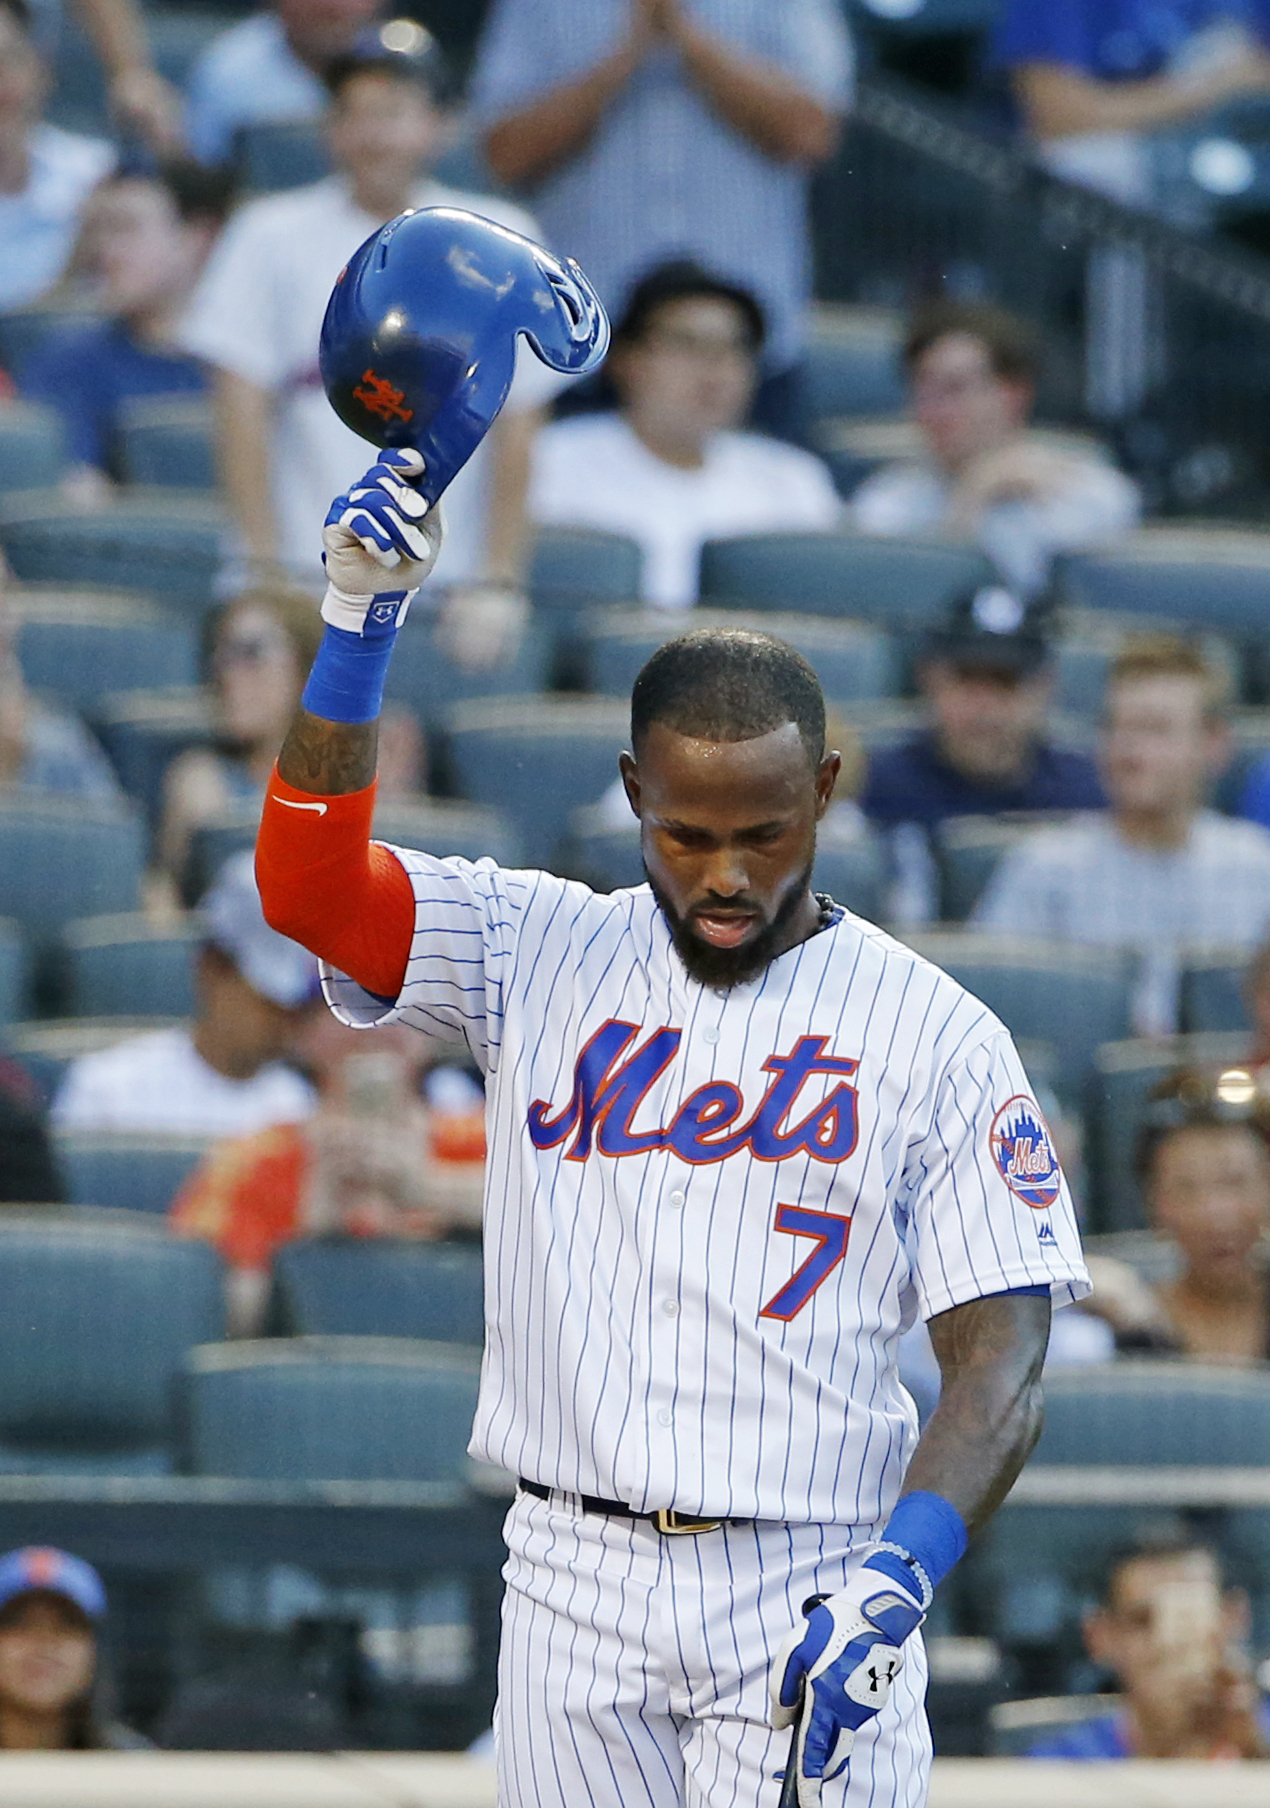 New York Mets Jose Reyes tips his cap before his first at-bat after returning to the Mets, his first team, during a baseball game against the Miami Marlins, Tuesday, July 5, 2016, in New York. Reyes served a suspension under the league's domestic violence